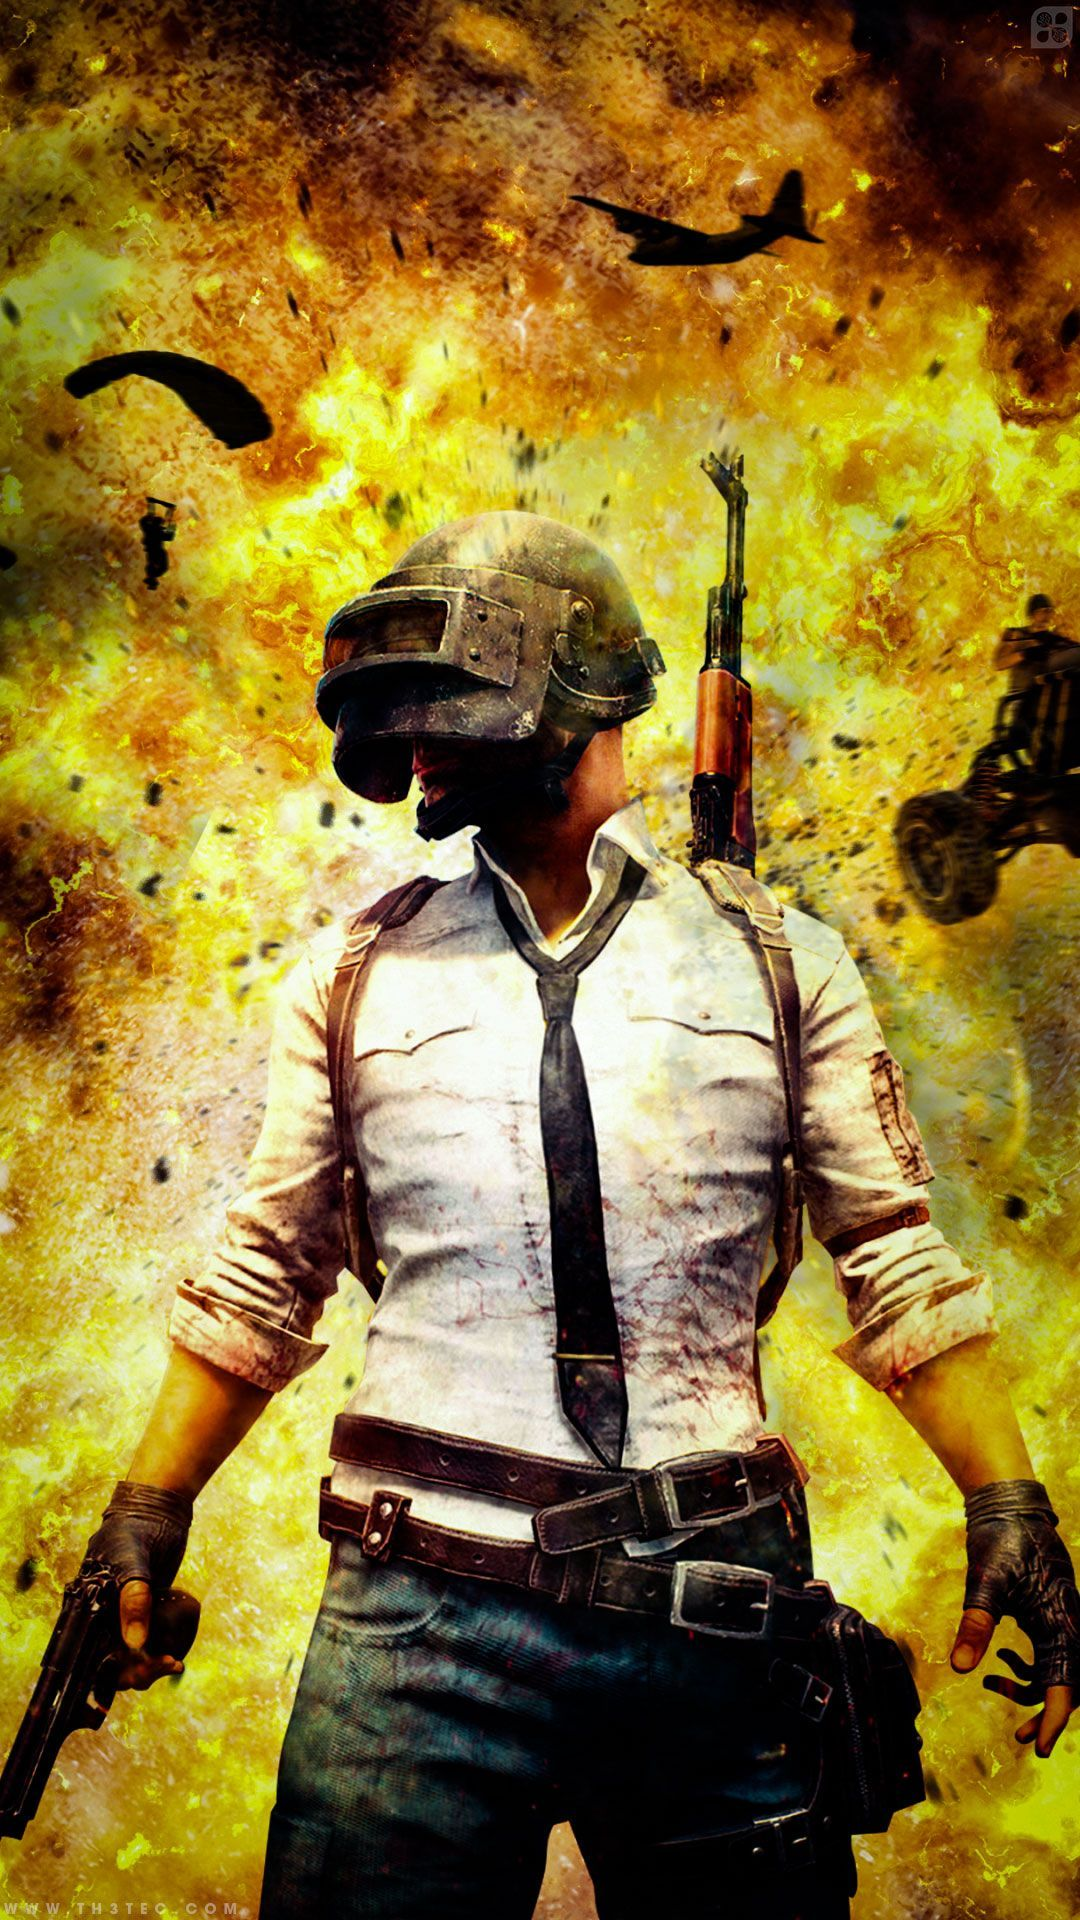 20 Pubg Mobile Wallpaper Hd Android Phone Backgrounds Download Mobile Wallpaper Android Android Phone Backgrounds Pubg Mobile Wallpaper